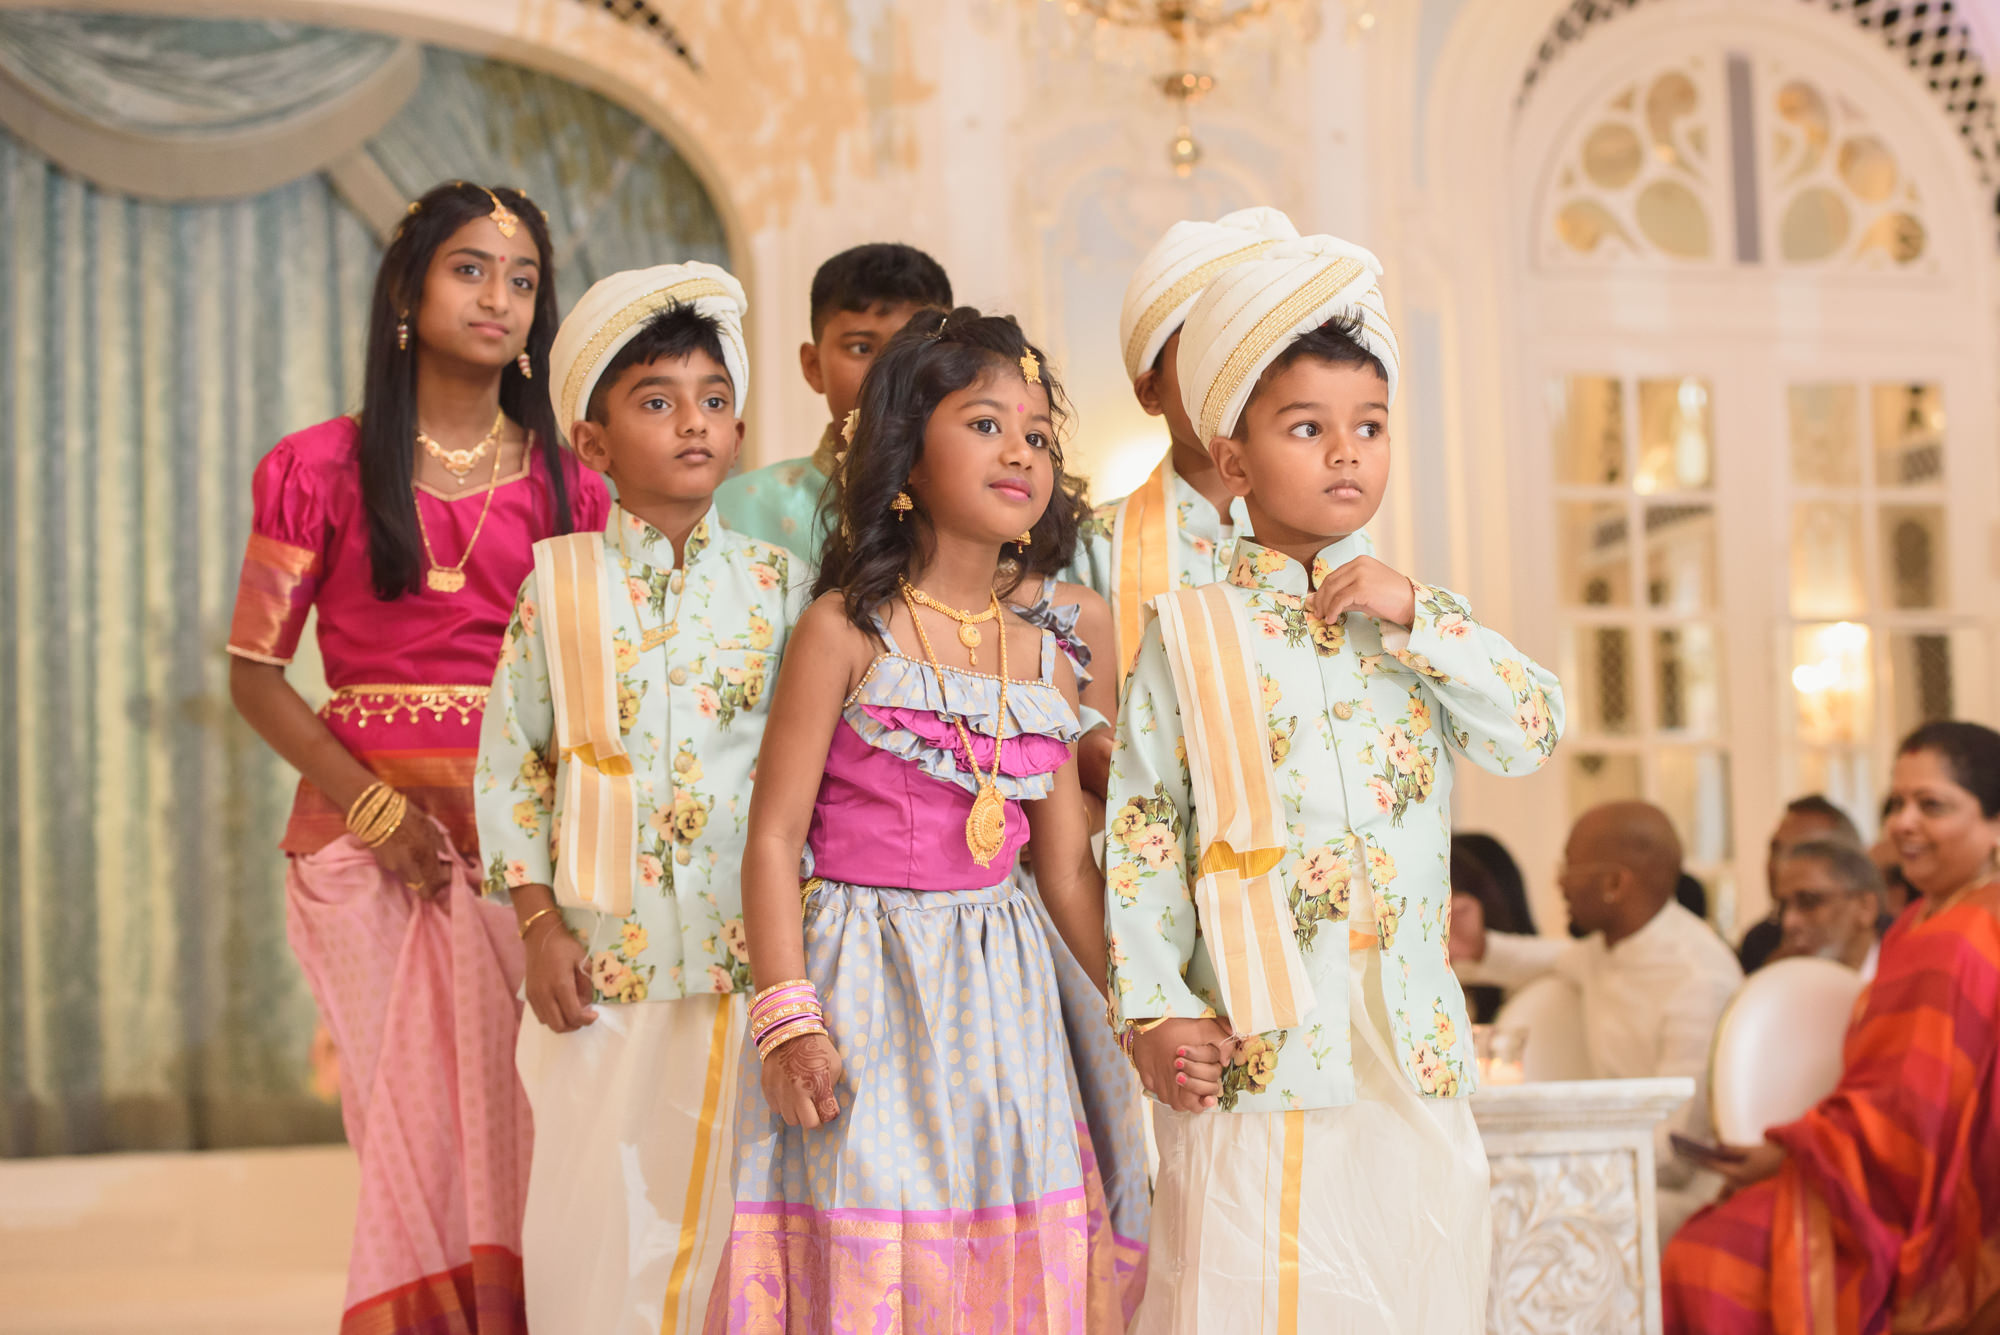 Tamil Gujrati hindu wedding photography photographer london the savoy -51.jpg